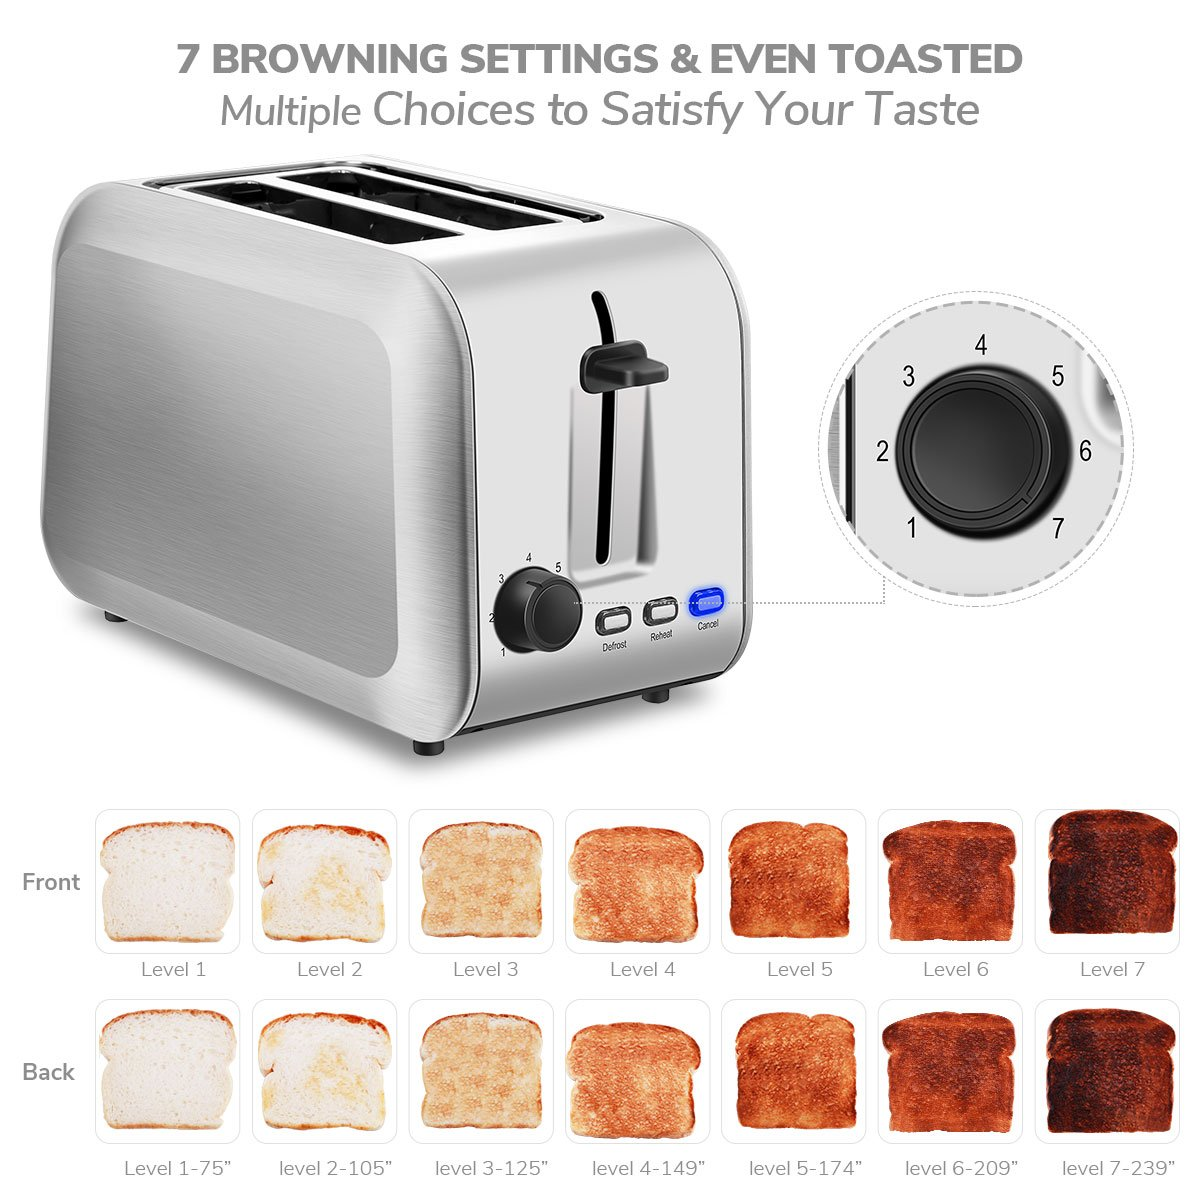 2-Slice Toaster, TOBOX Cool Touch Toasters with 2 Extra-Wide Slots, 7 Browning Dials and Removable Crumb Tray - Brushed Stainless Steel